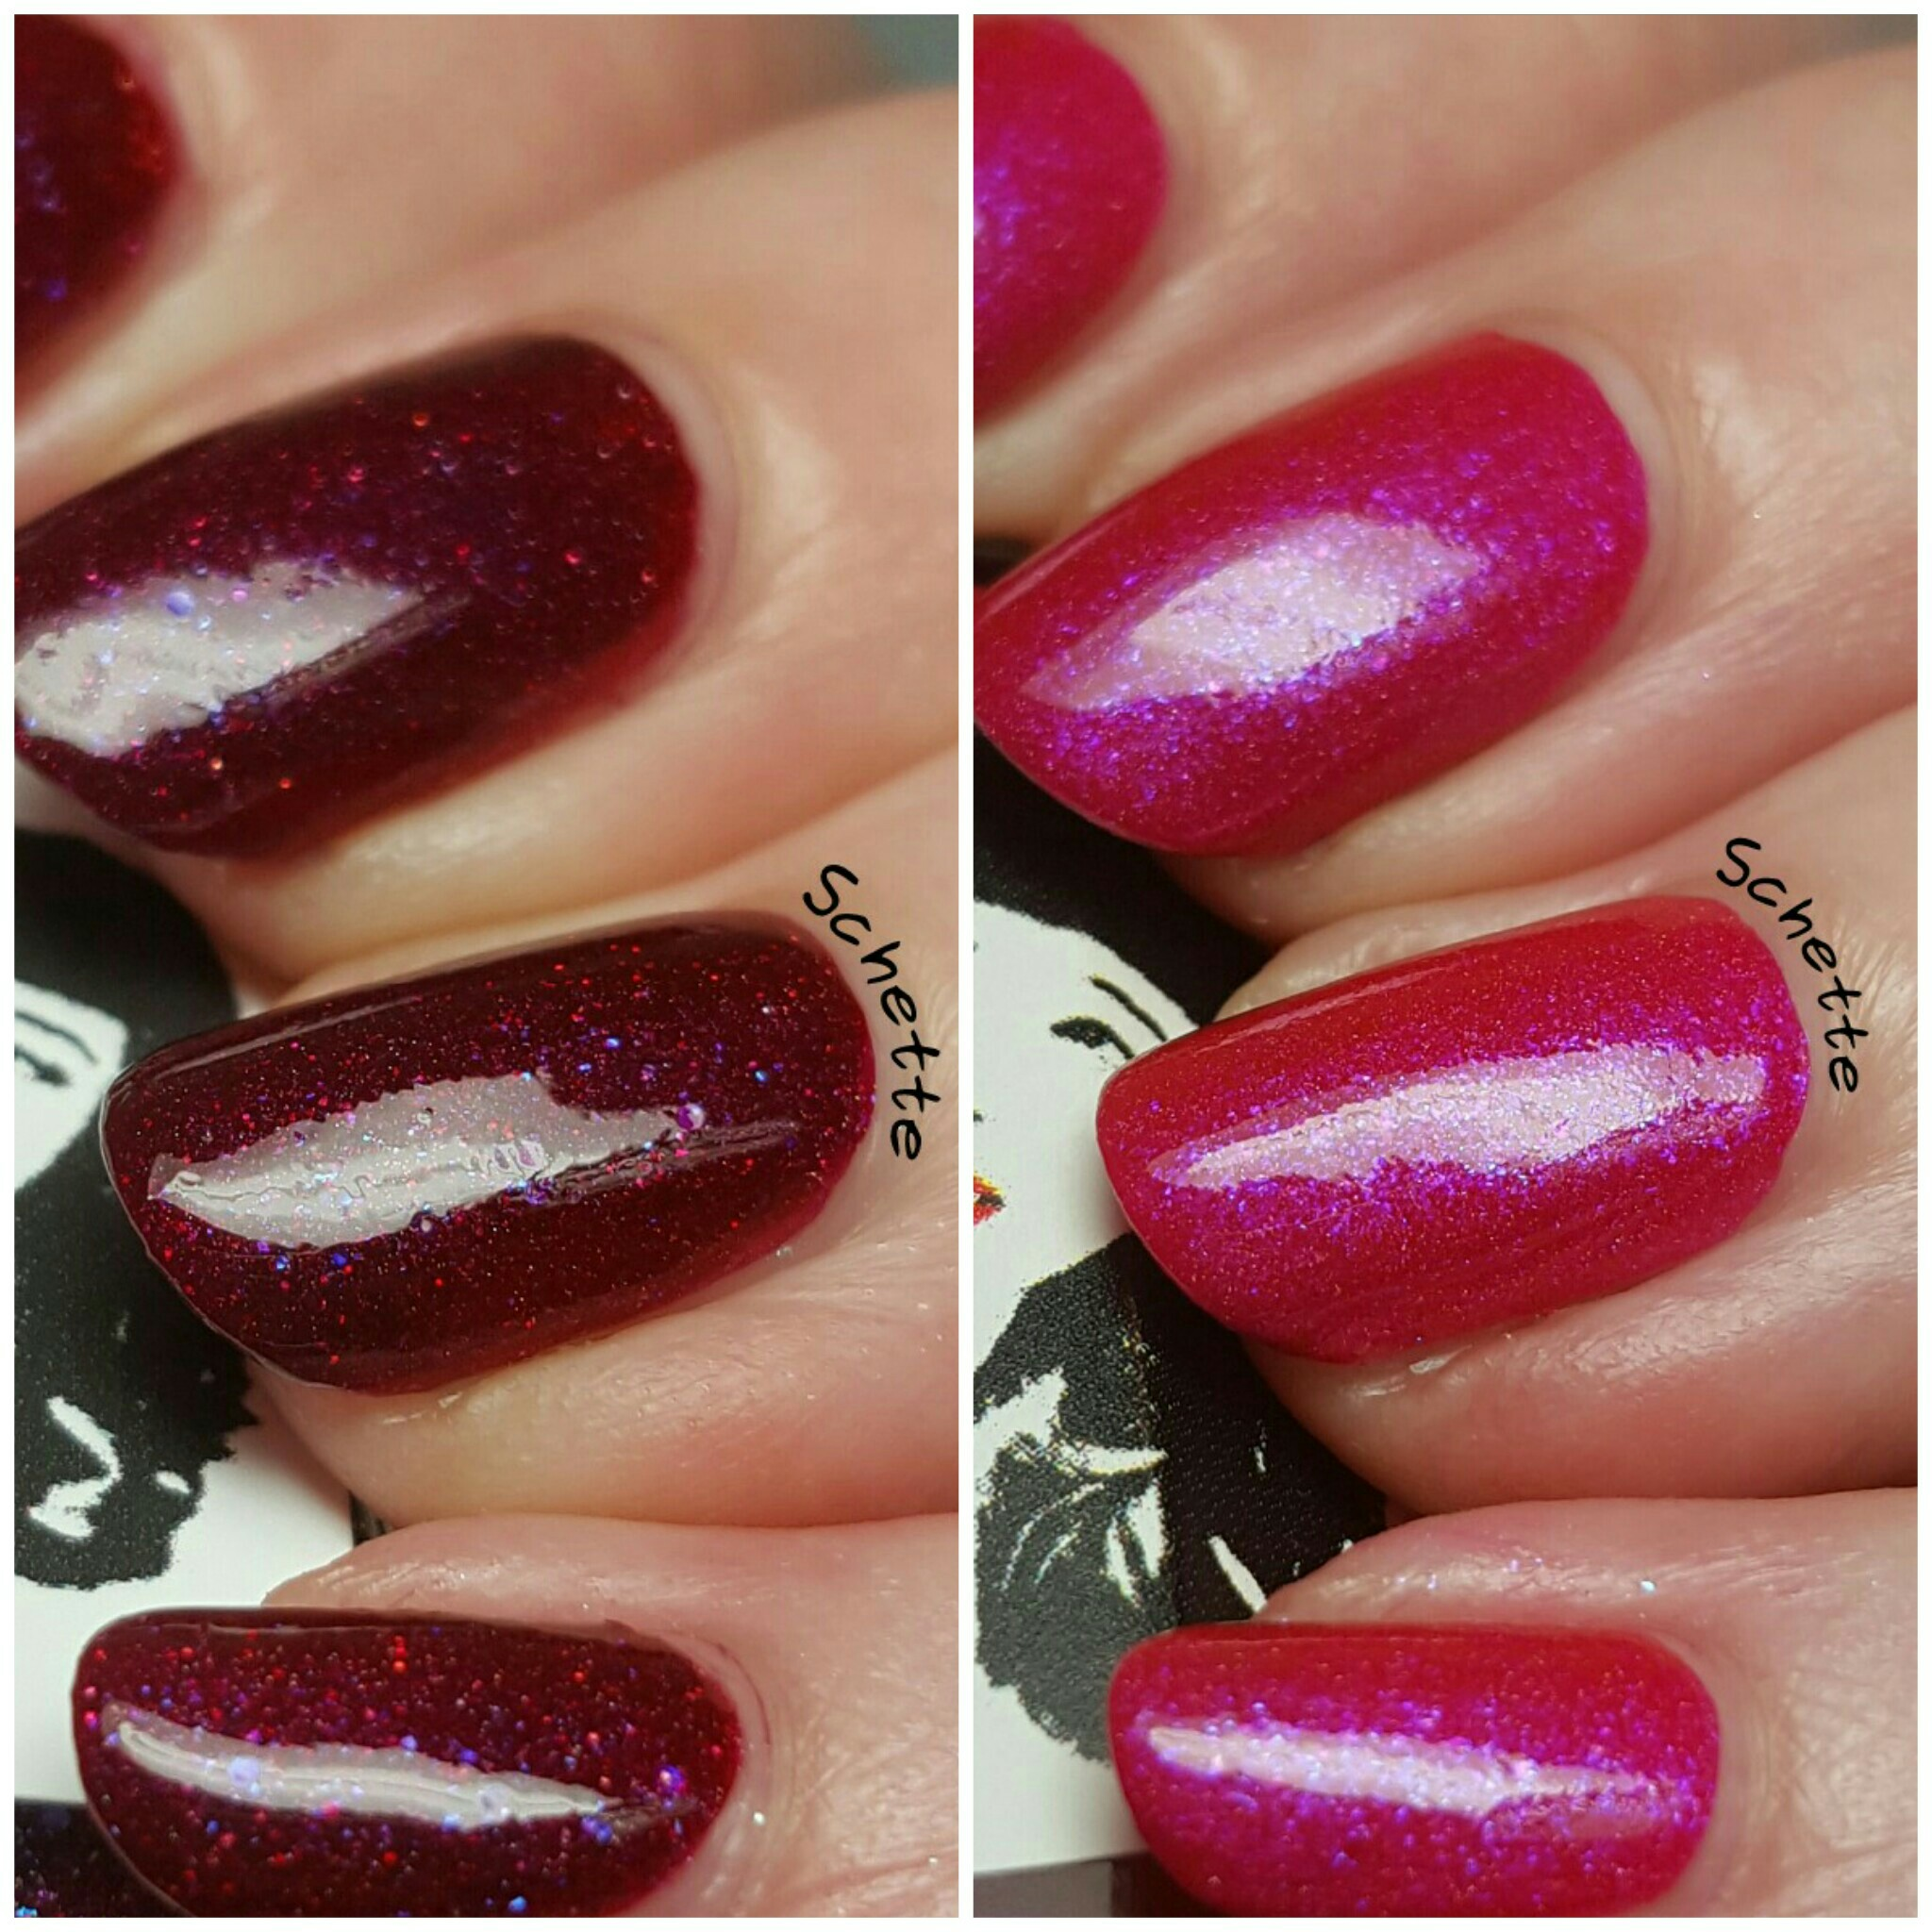 Shleee Polish : Love me like you do, Prince Gumball